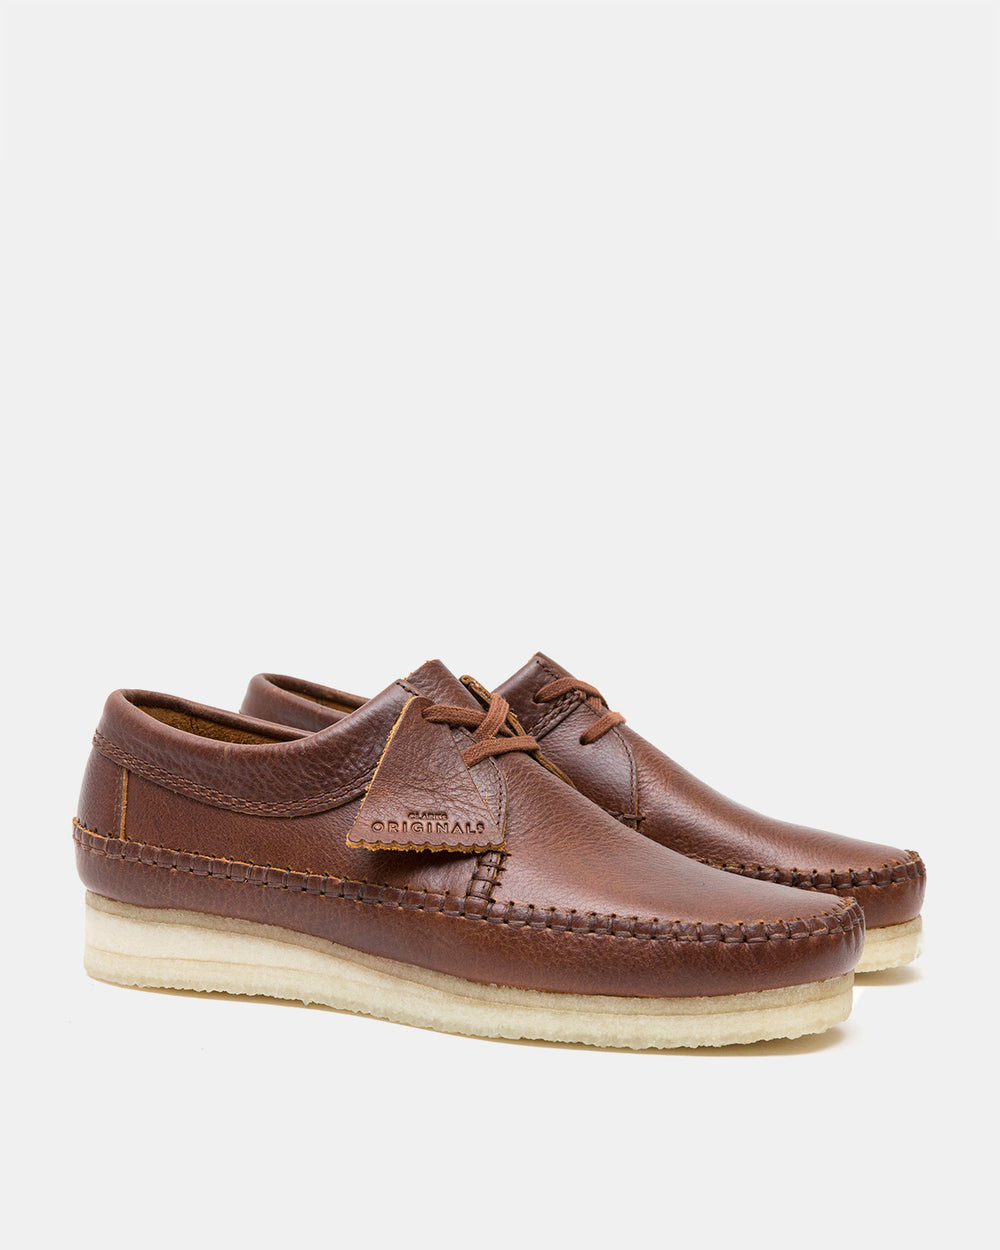 Clarks - Weaver (Tan Leather)